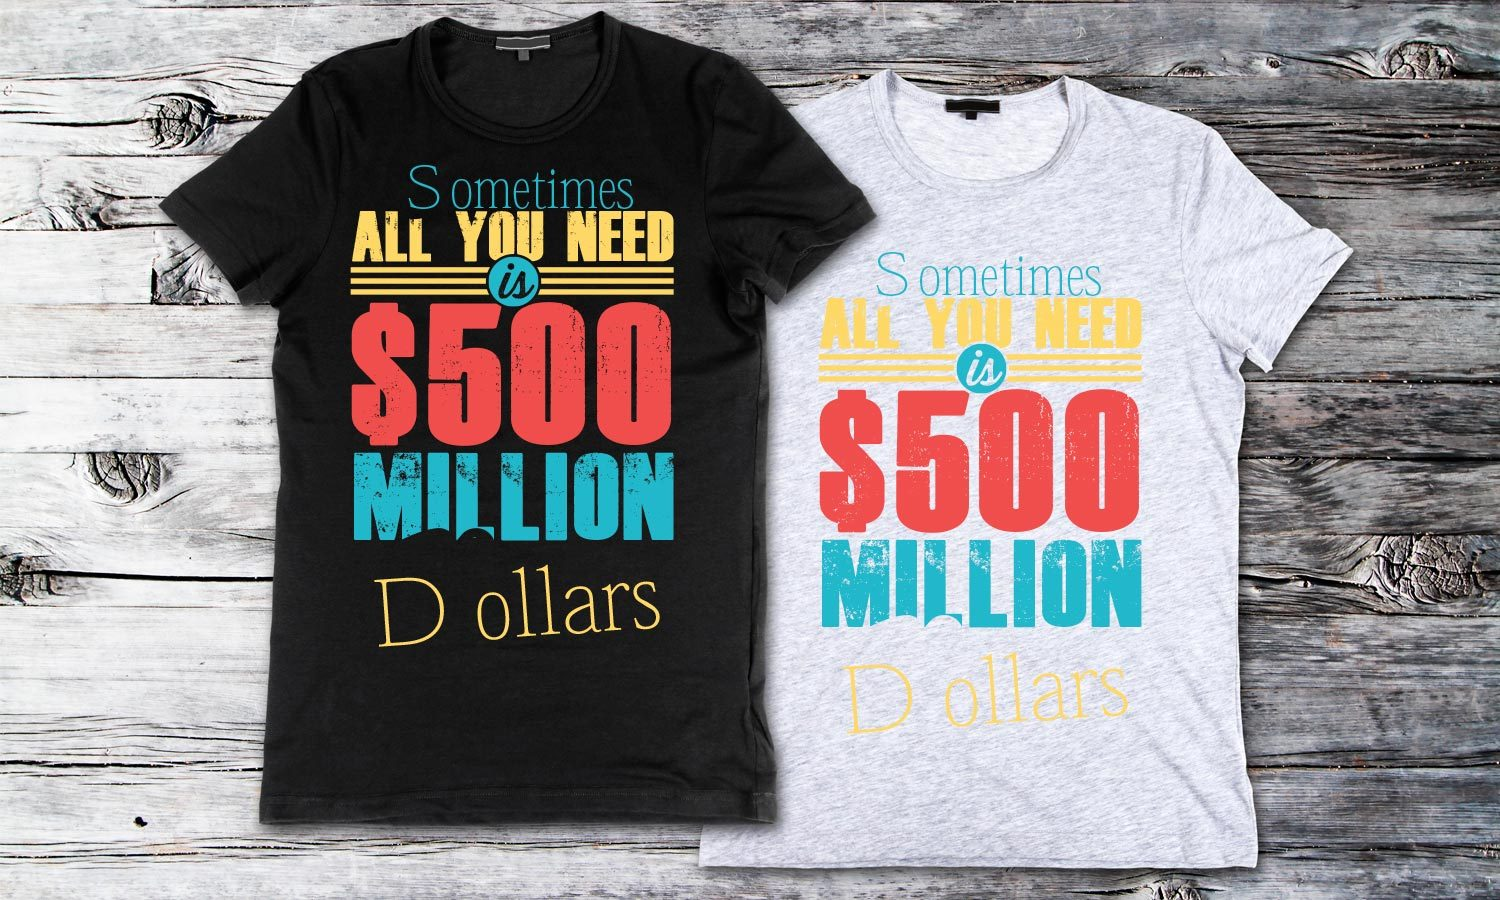 All You Need Is - Printed T-Shirt for Men, Women and Kids - TS151